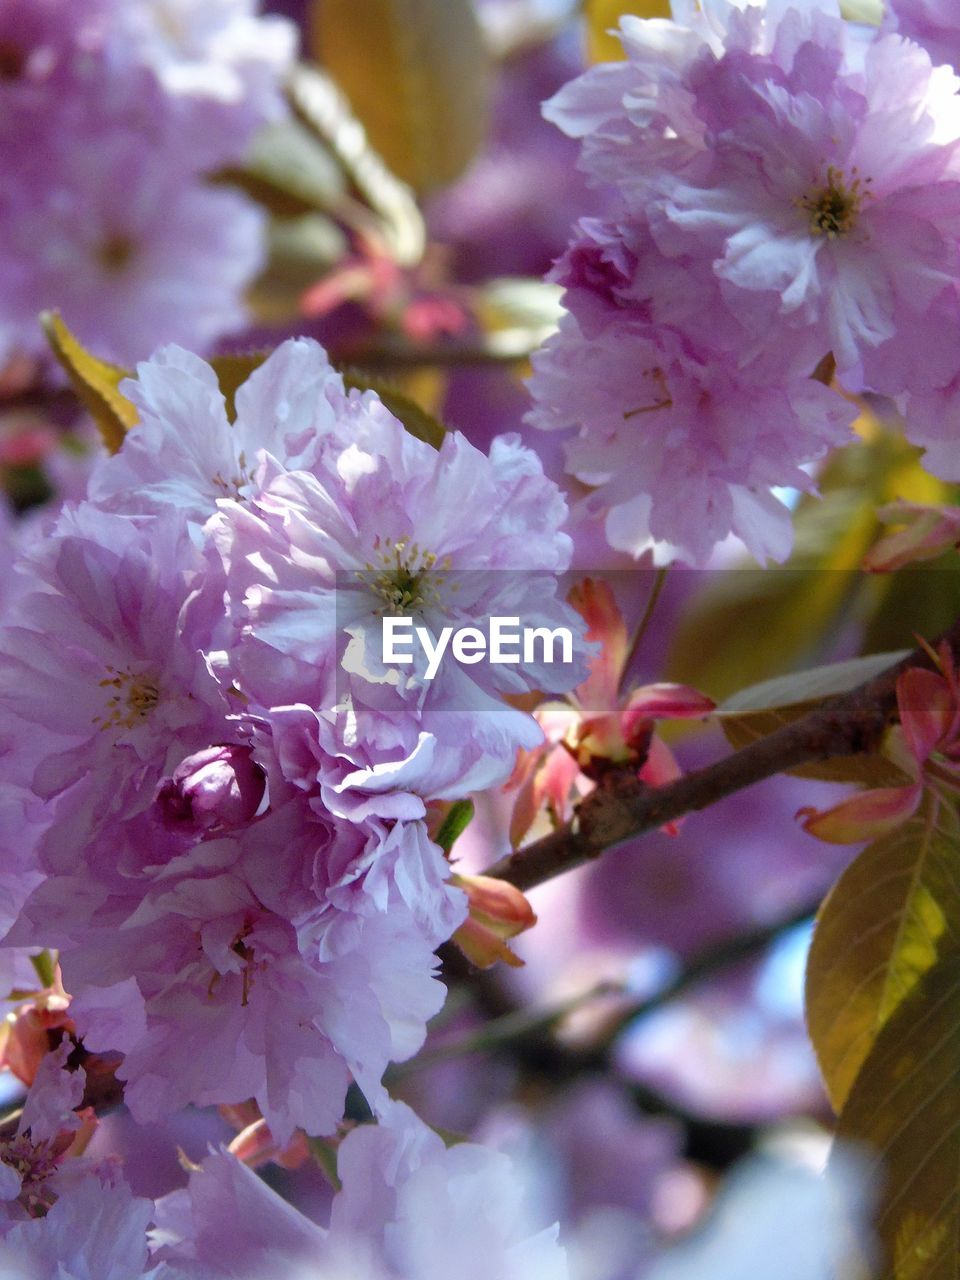 flower, blossom, growth, beauty in nature, fragility, nature, botany, springtime, stamen, spring, petal, tree, no people, freshness, branch, flower head, close-up, outdoors, day